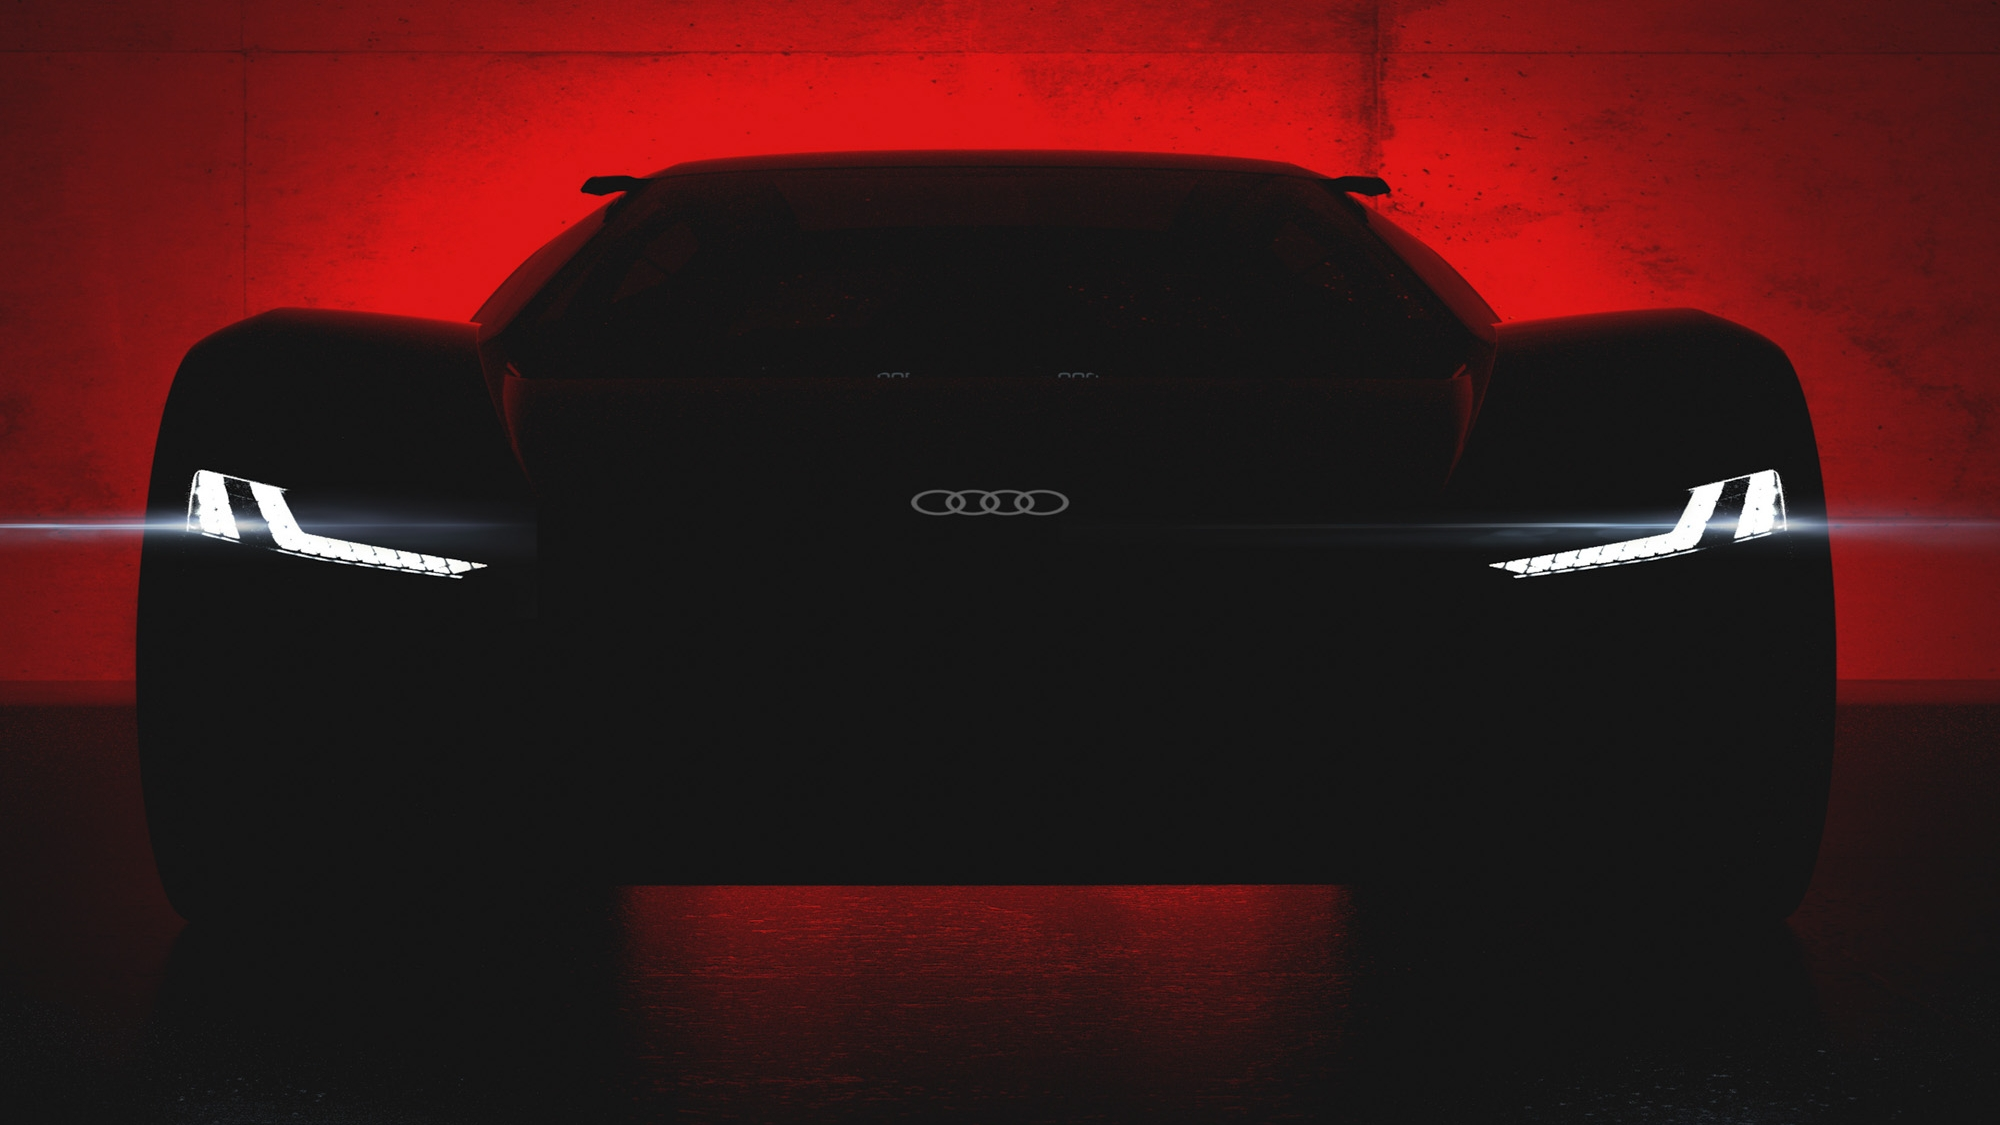 Audi Pb 18 E Tron Is A Radical Concept That Could Preview An